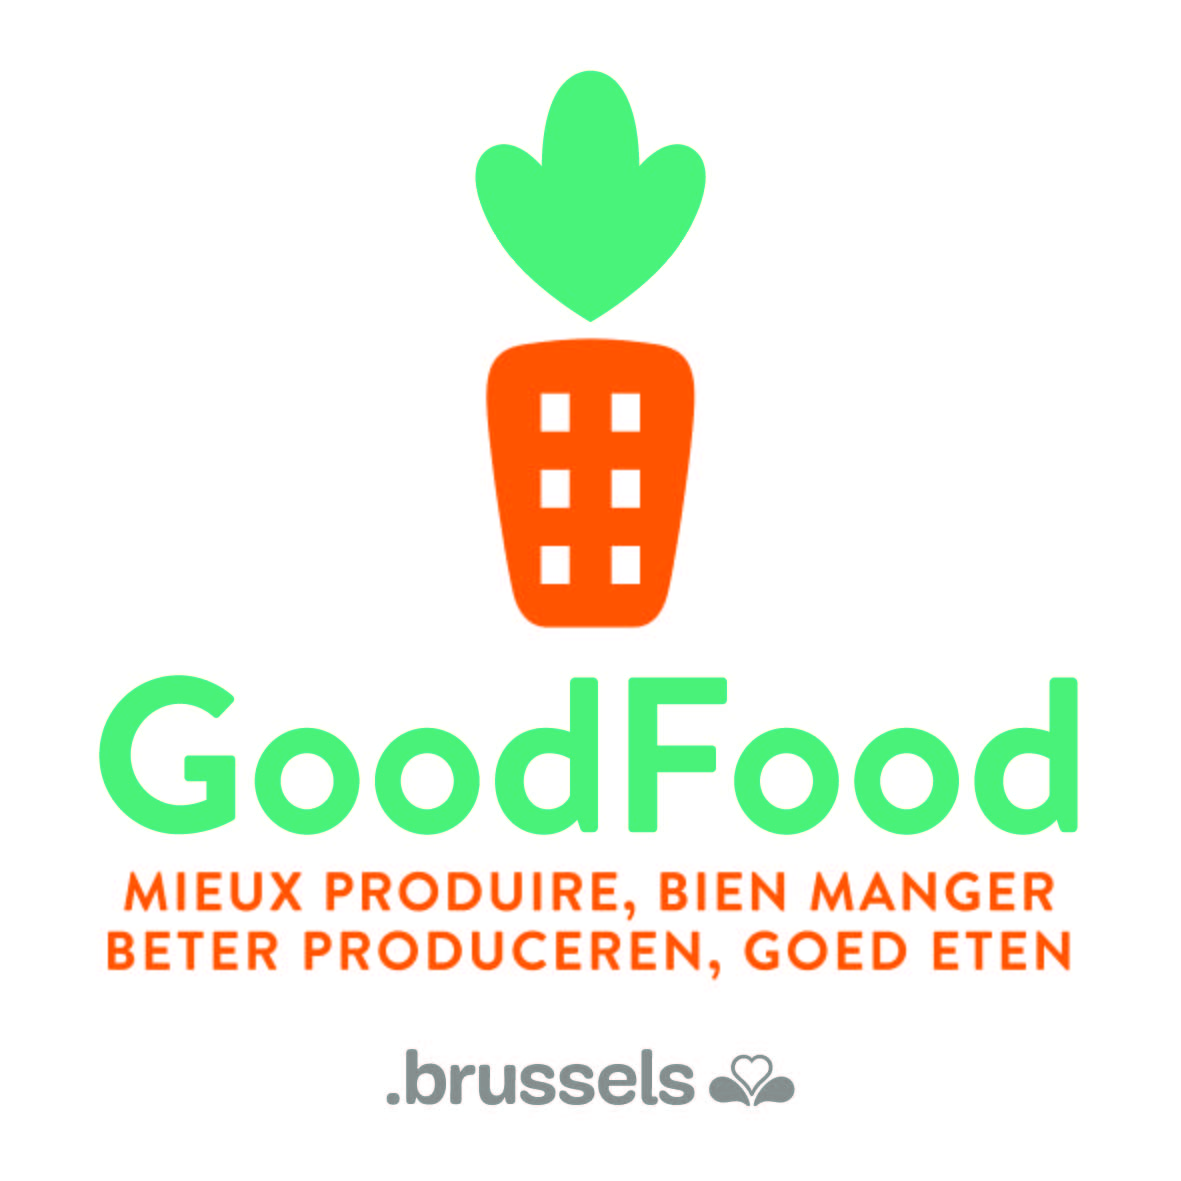 GoodFood.brussels